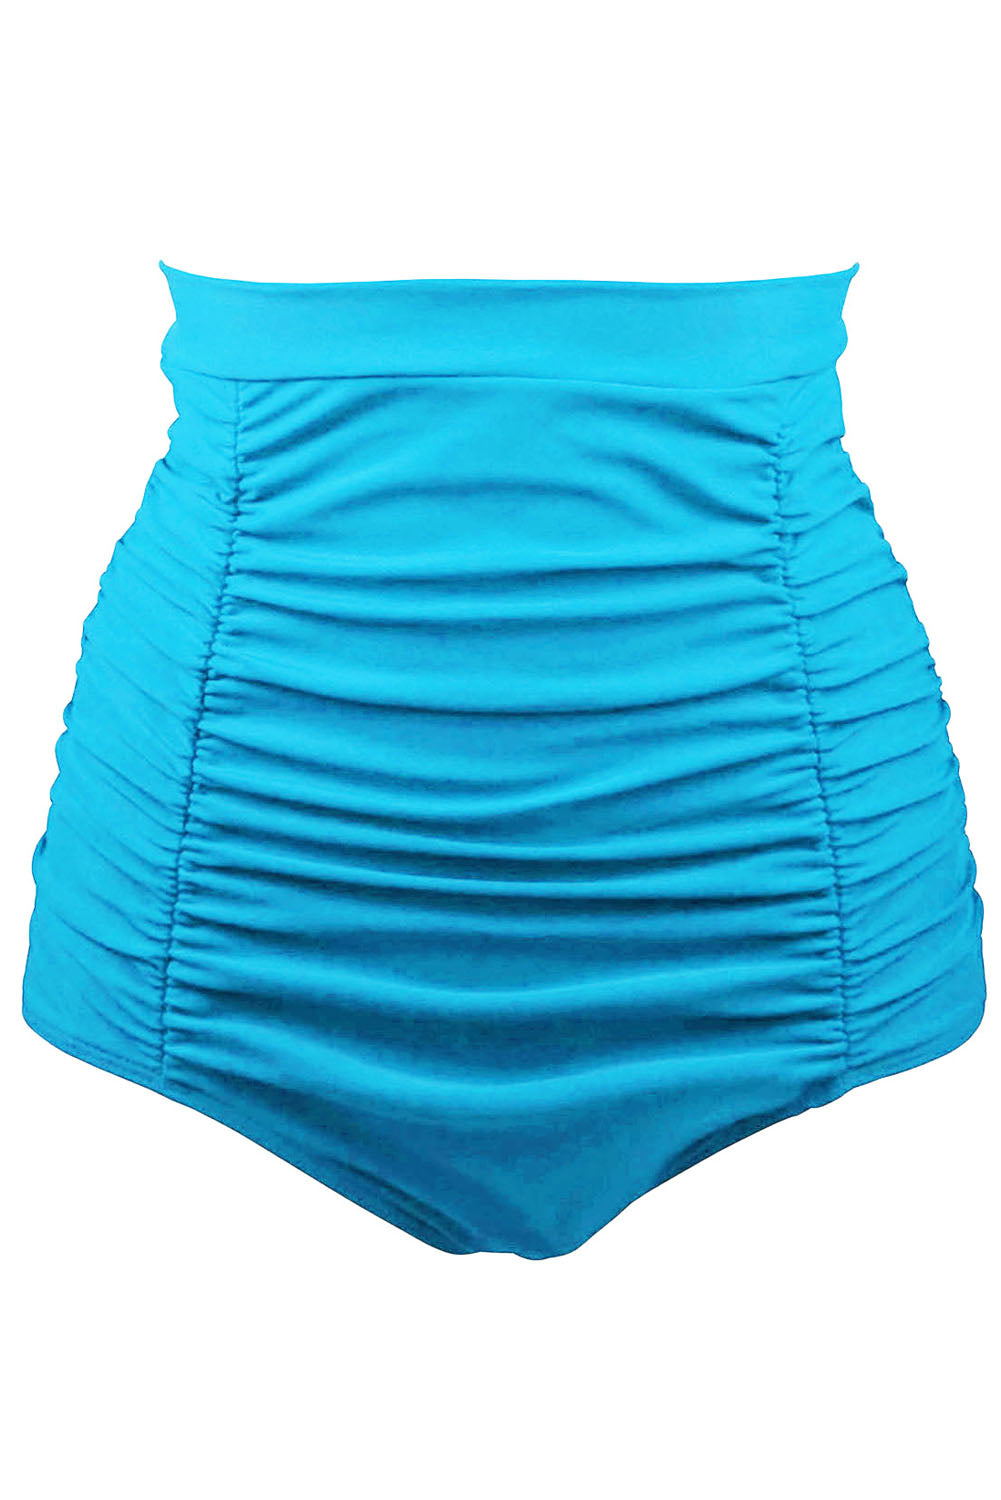 Her Fashion Blue Retro High Waisted Beach Style Swim Short